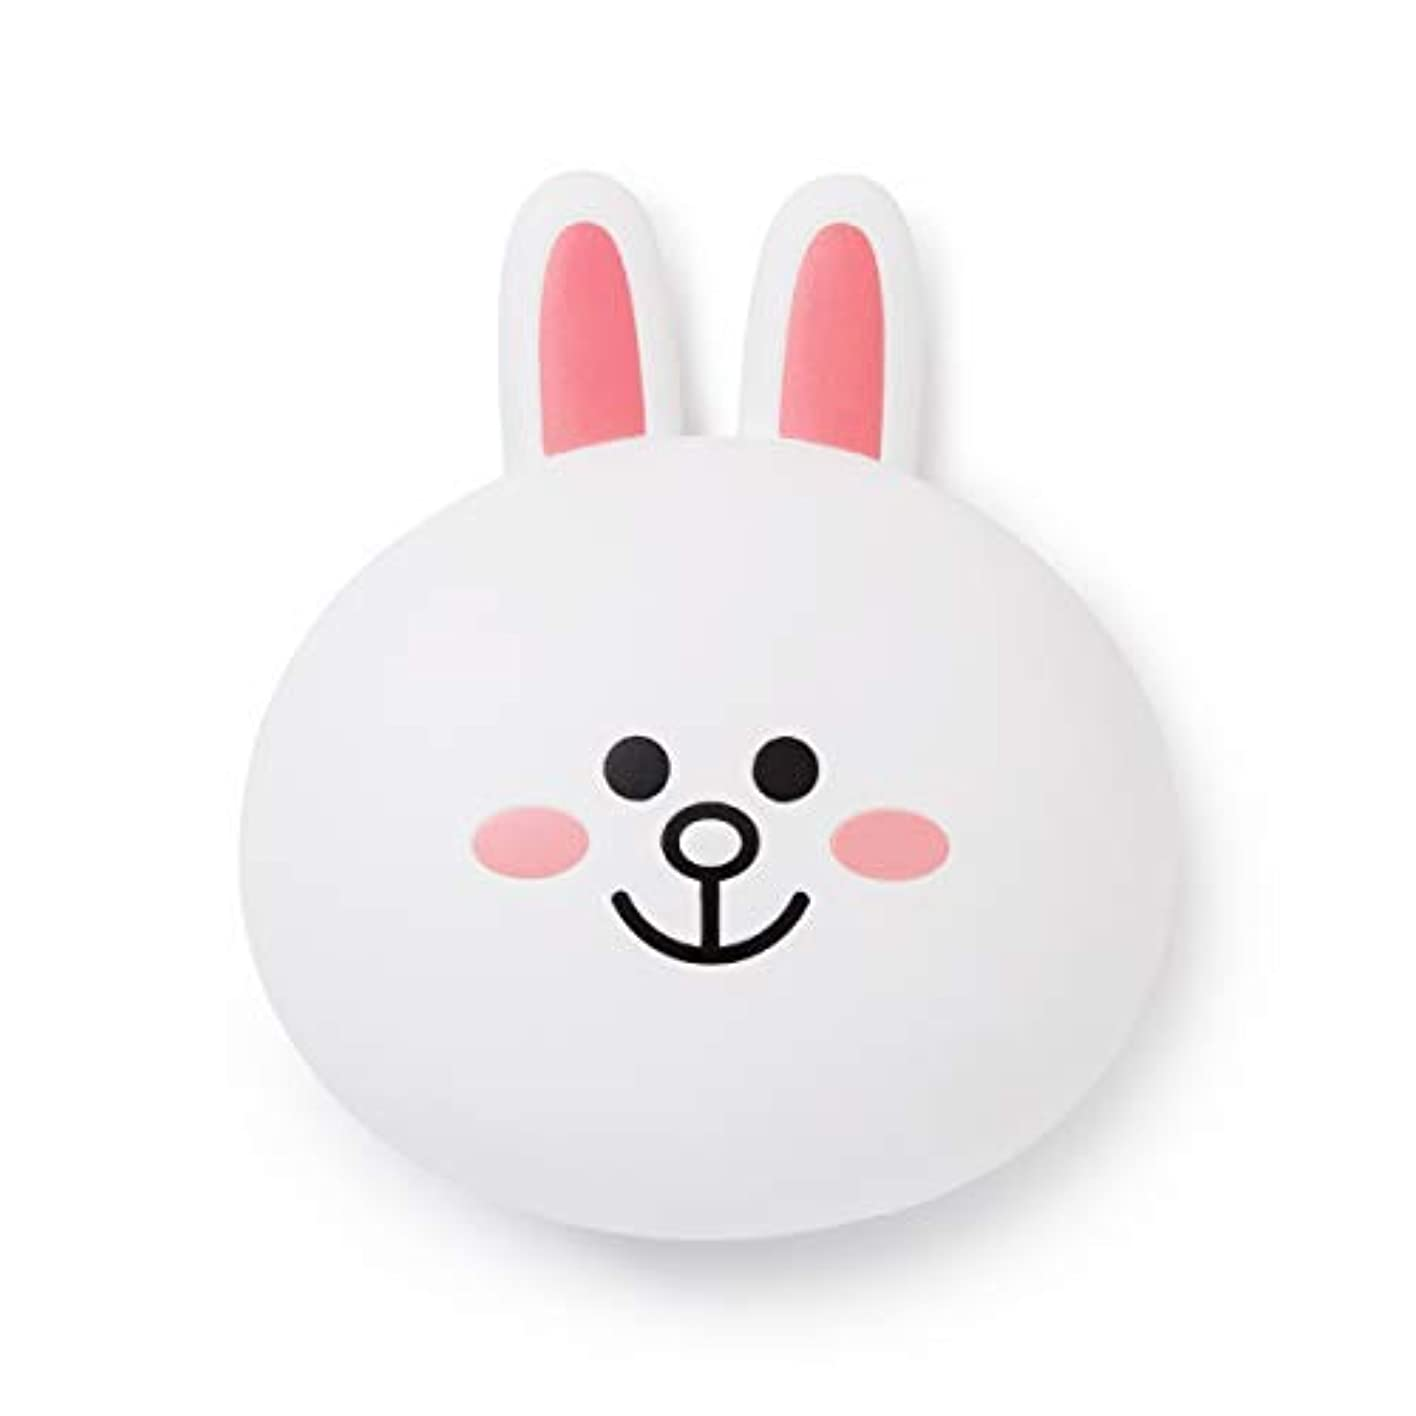 肥沃な悲しむコートLINE FRIENDS Hair Brush Accessories - CONY Character Travel Comb Accessory with Mirror for Women, White [並行輸入品]